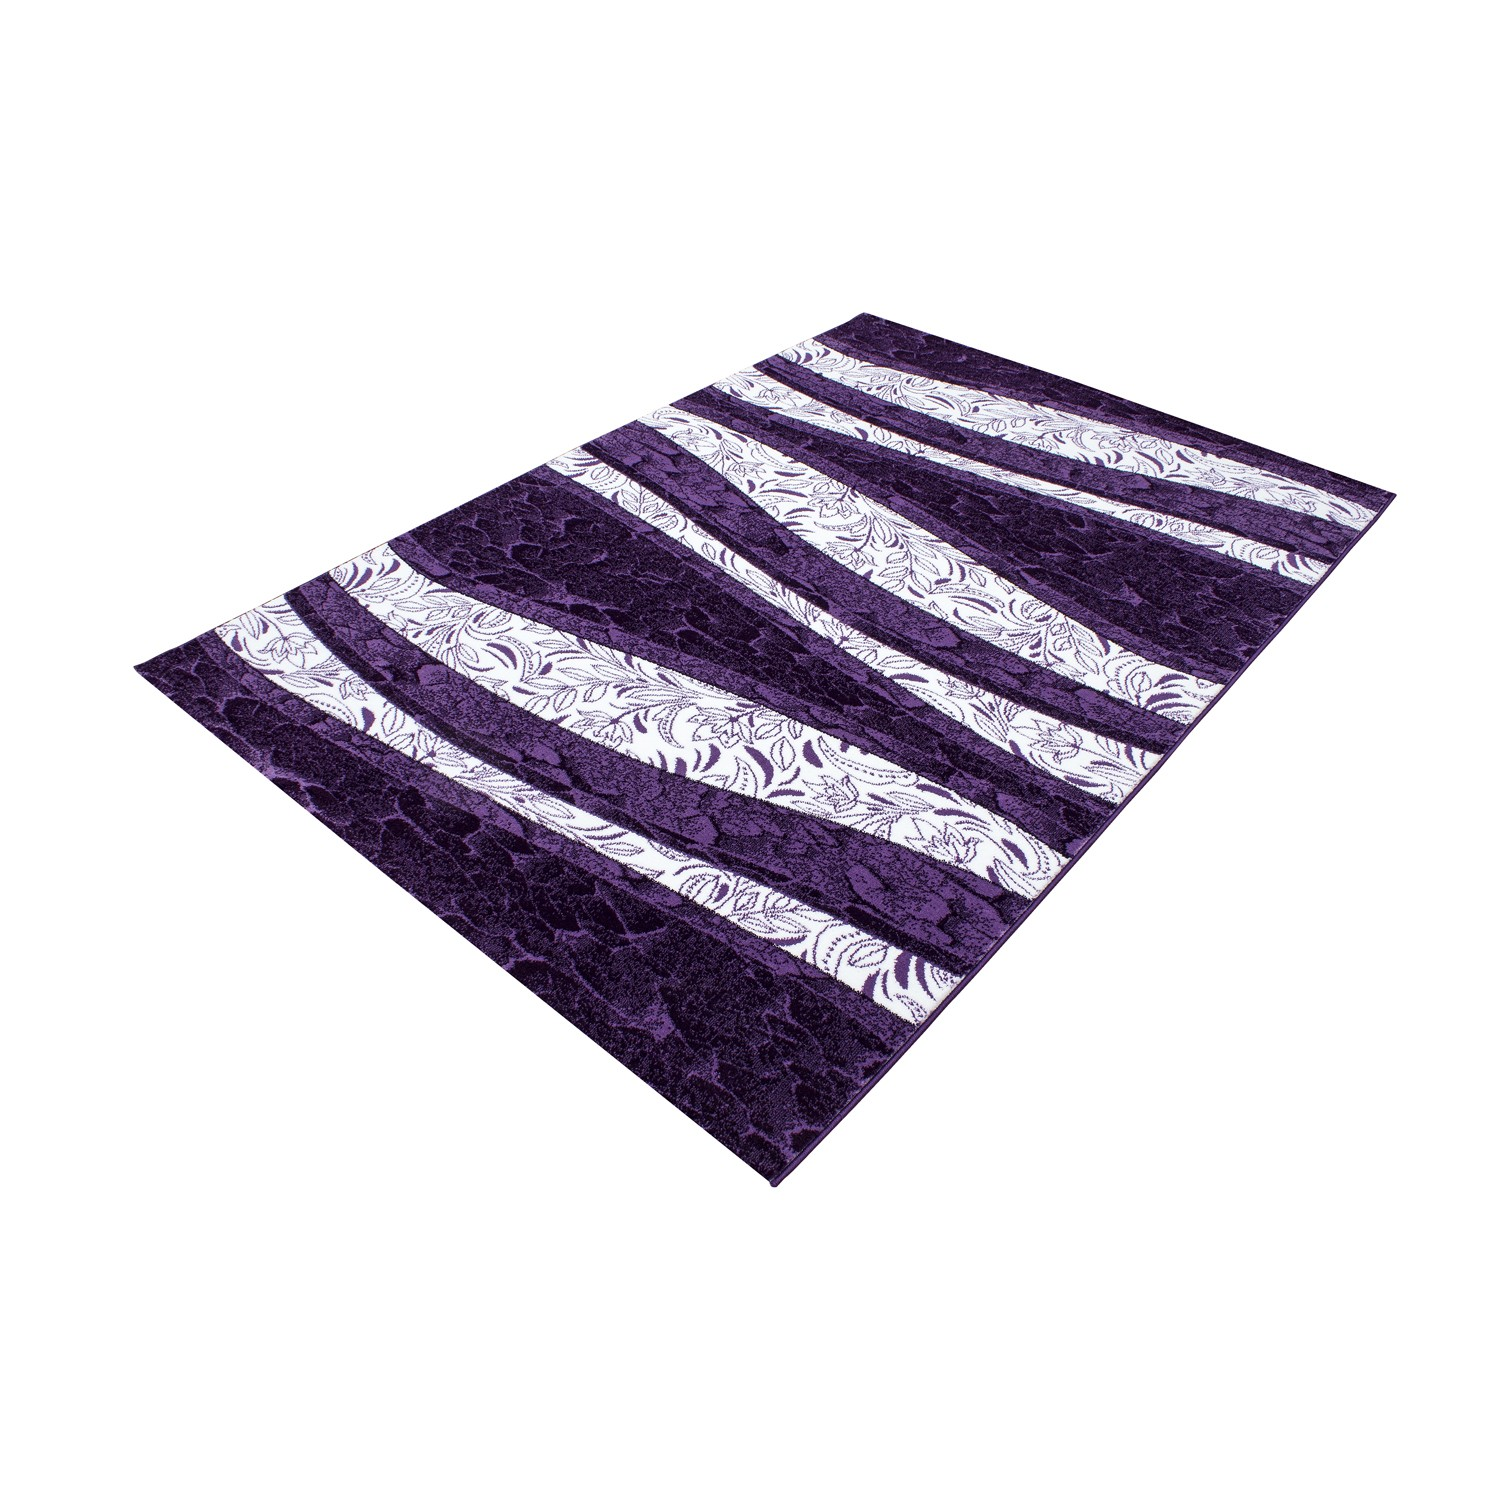 Tapis Design Moderne Coloris Violette Chic